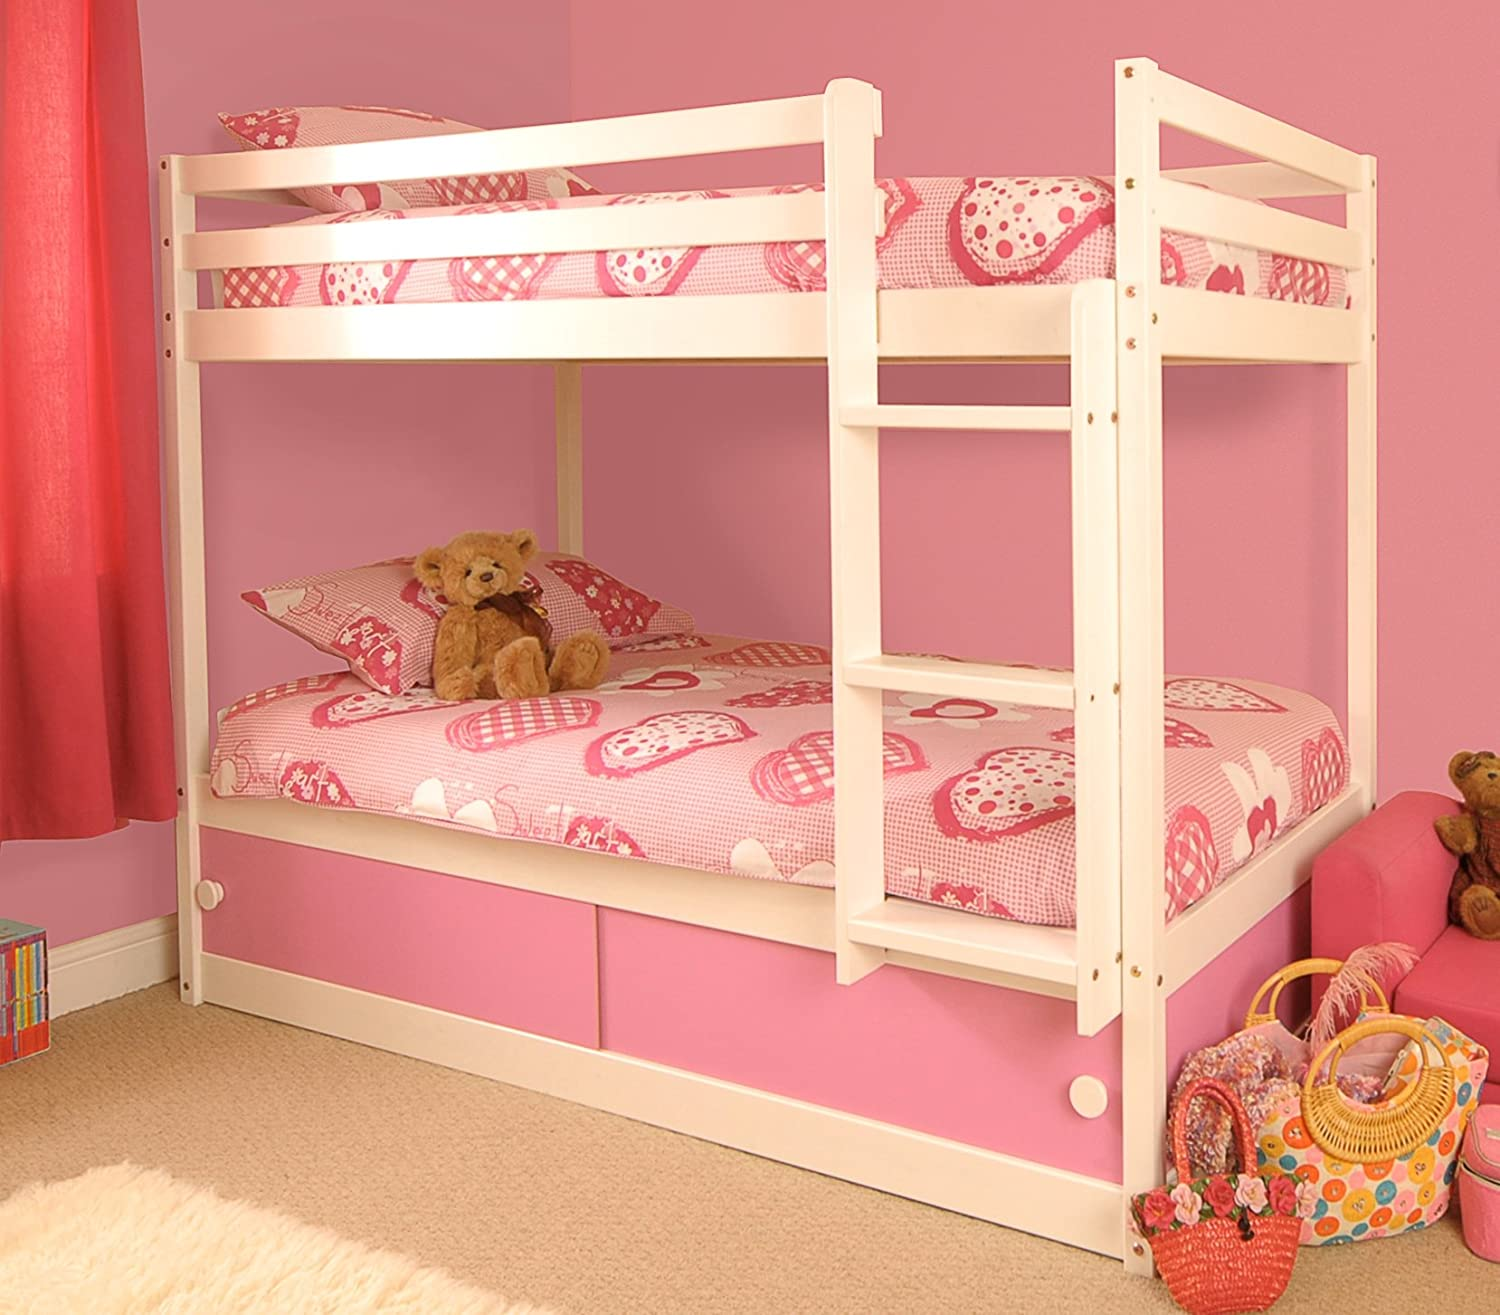 Girls Slide Storage White Wooden Bunk Bed With Pink Sliding Doors Amazoncouk Kitchen Home